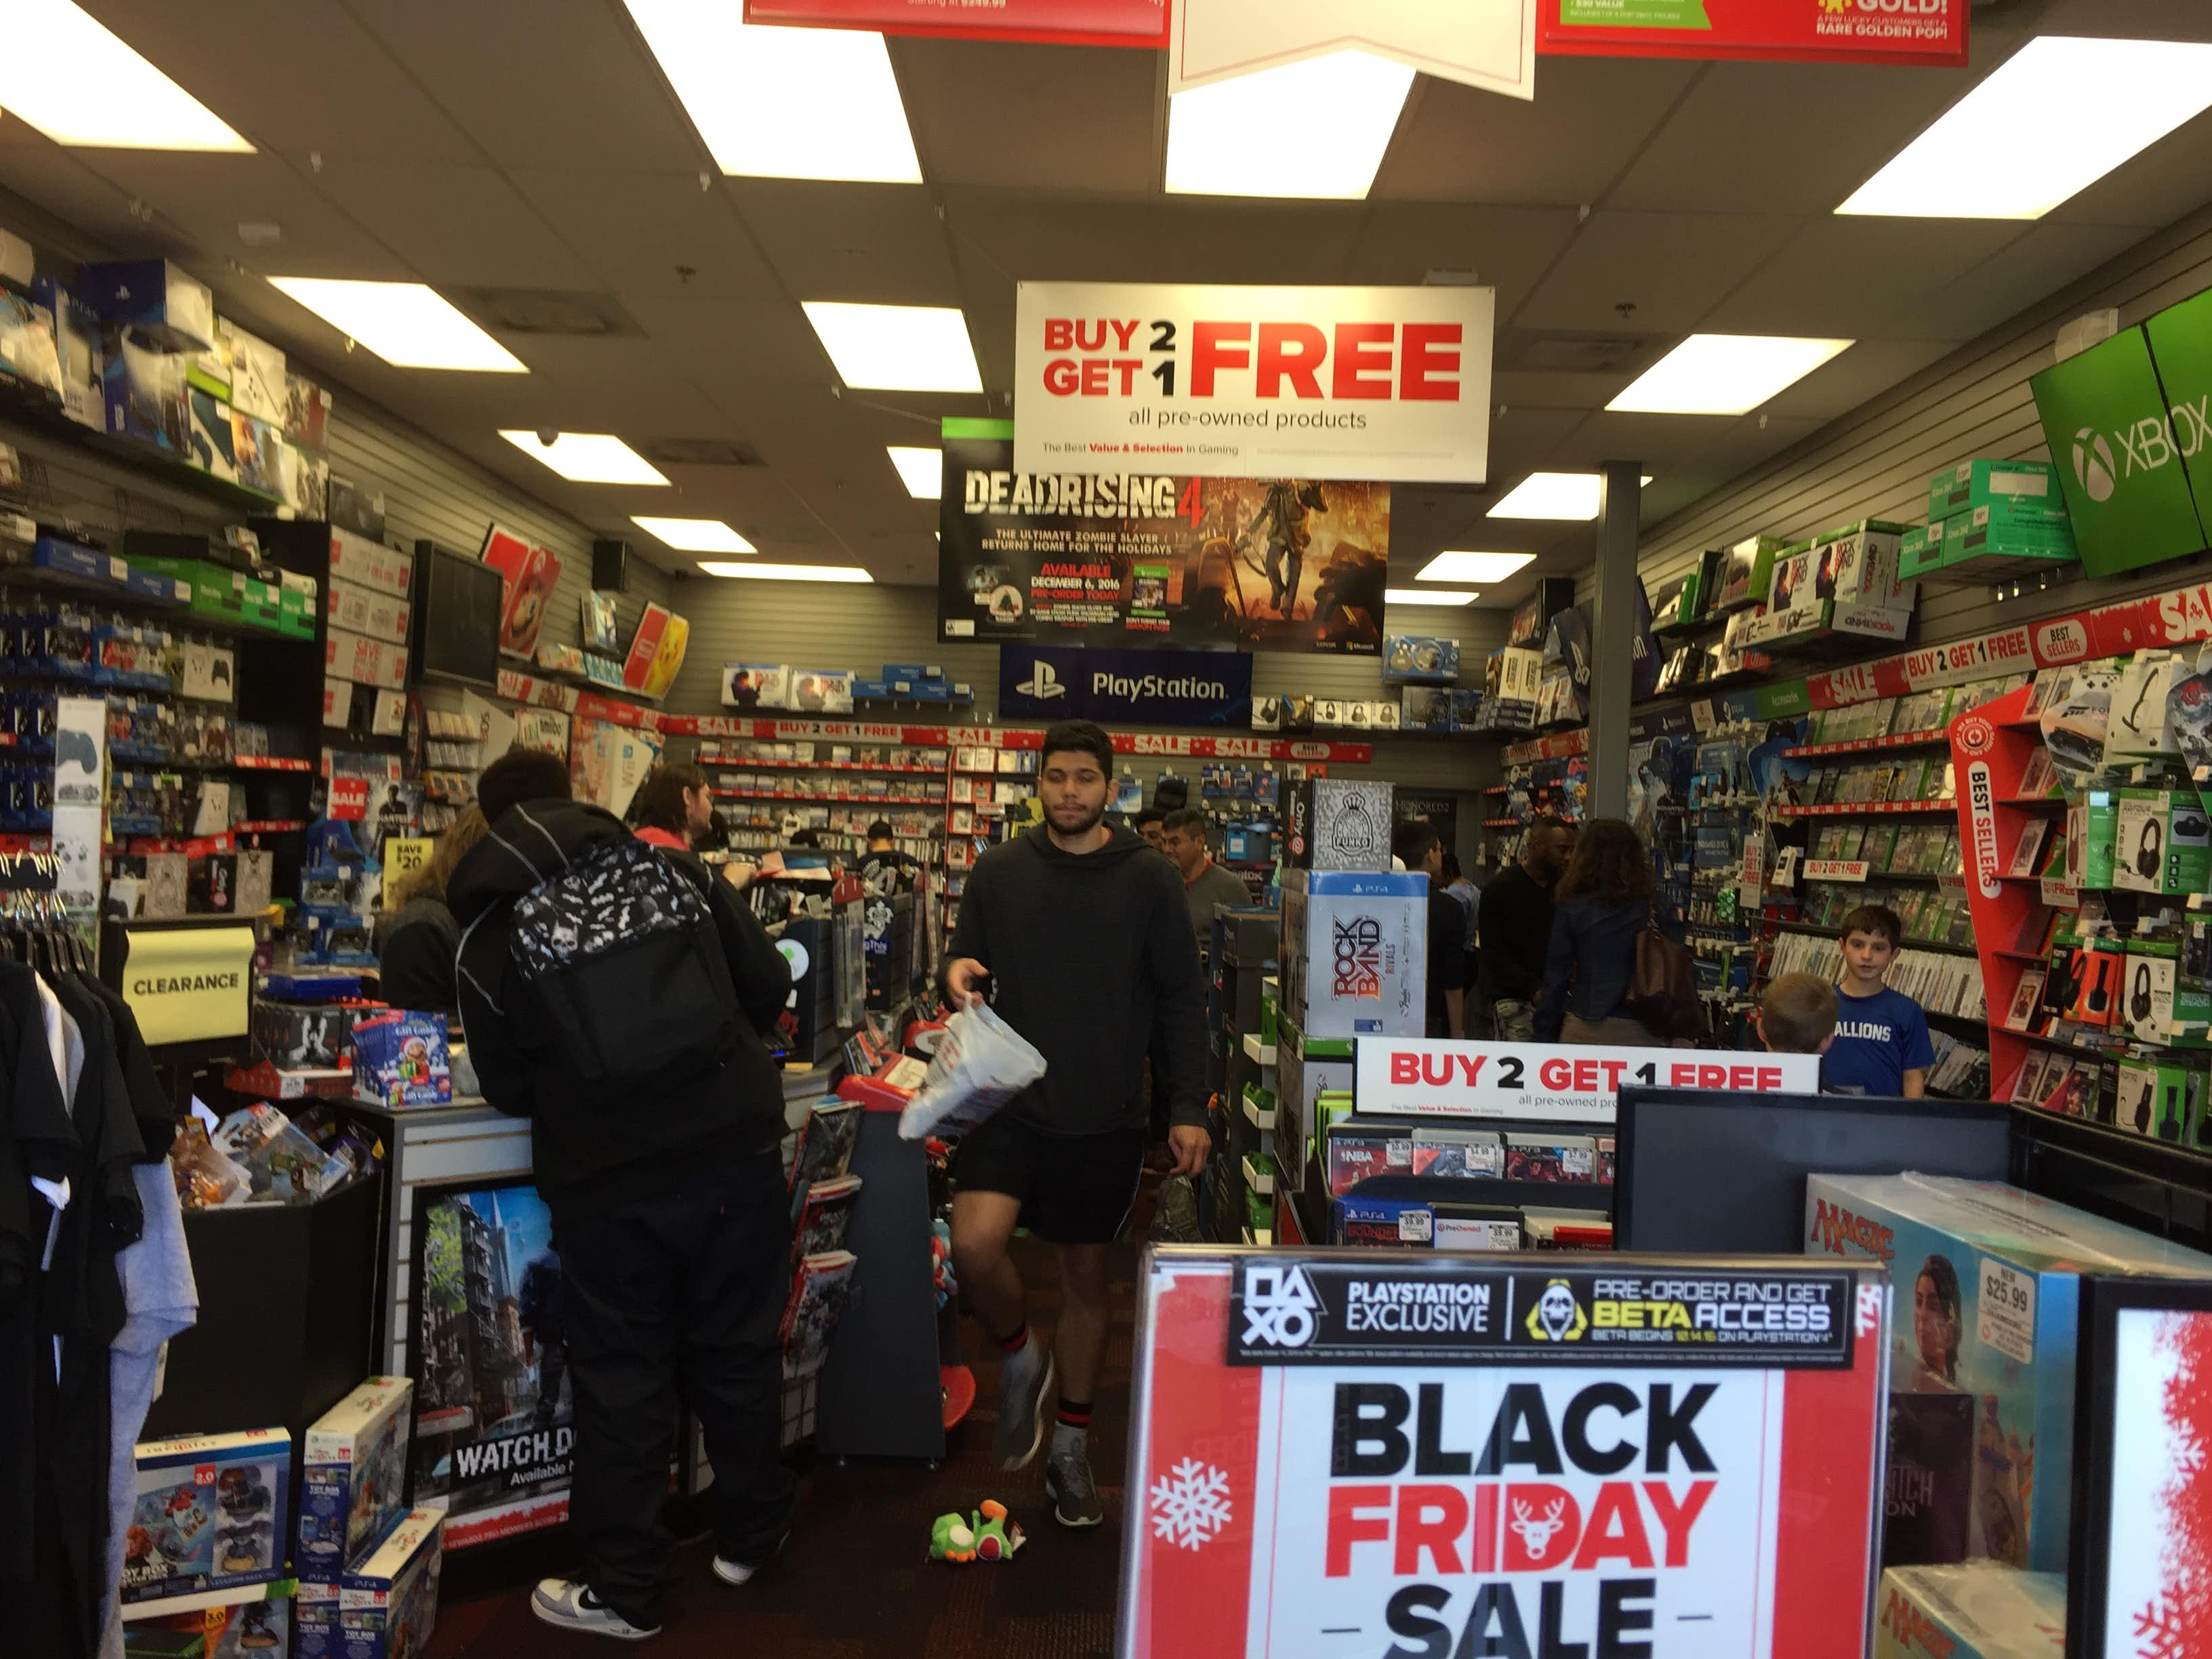 Black Friday 2016 at the GameStop in Timber Creek Crossing in Dallas. DMN staff